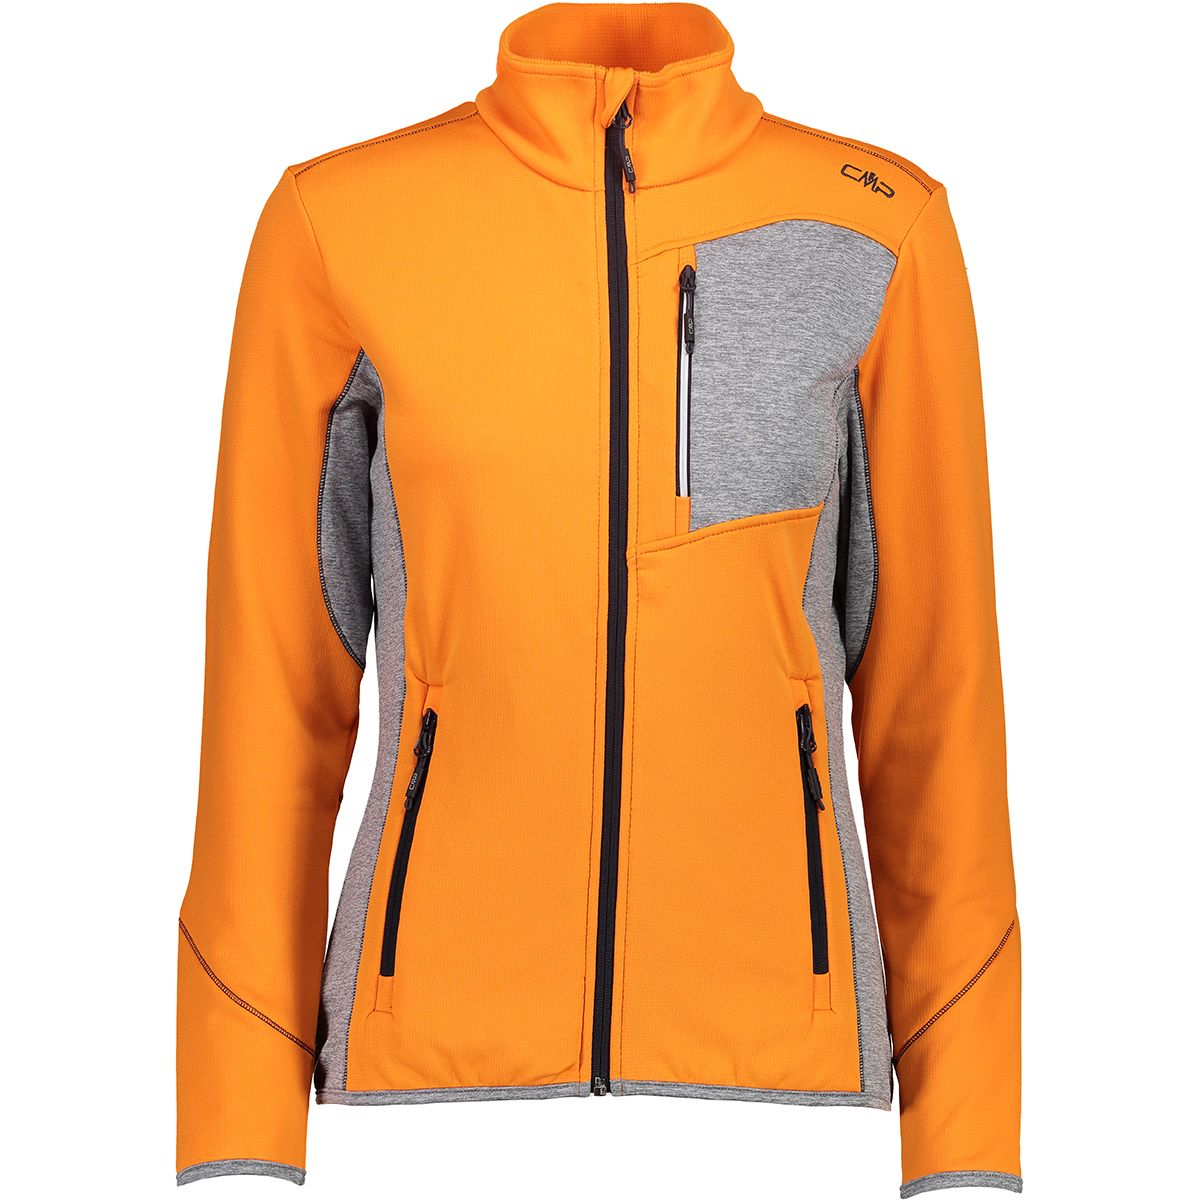 CMP Damen Gridtech Fleece Jacke (Größe L, Orange) | Fleecejacken > Damen